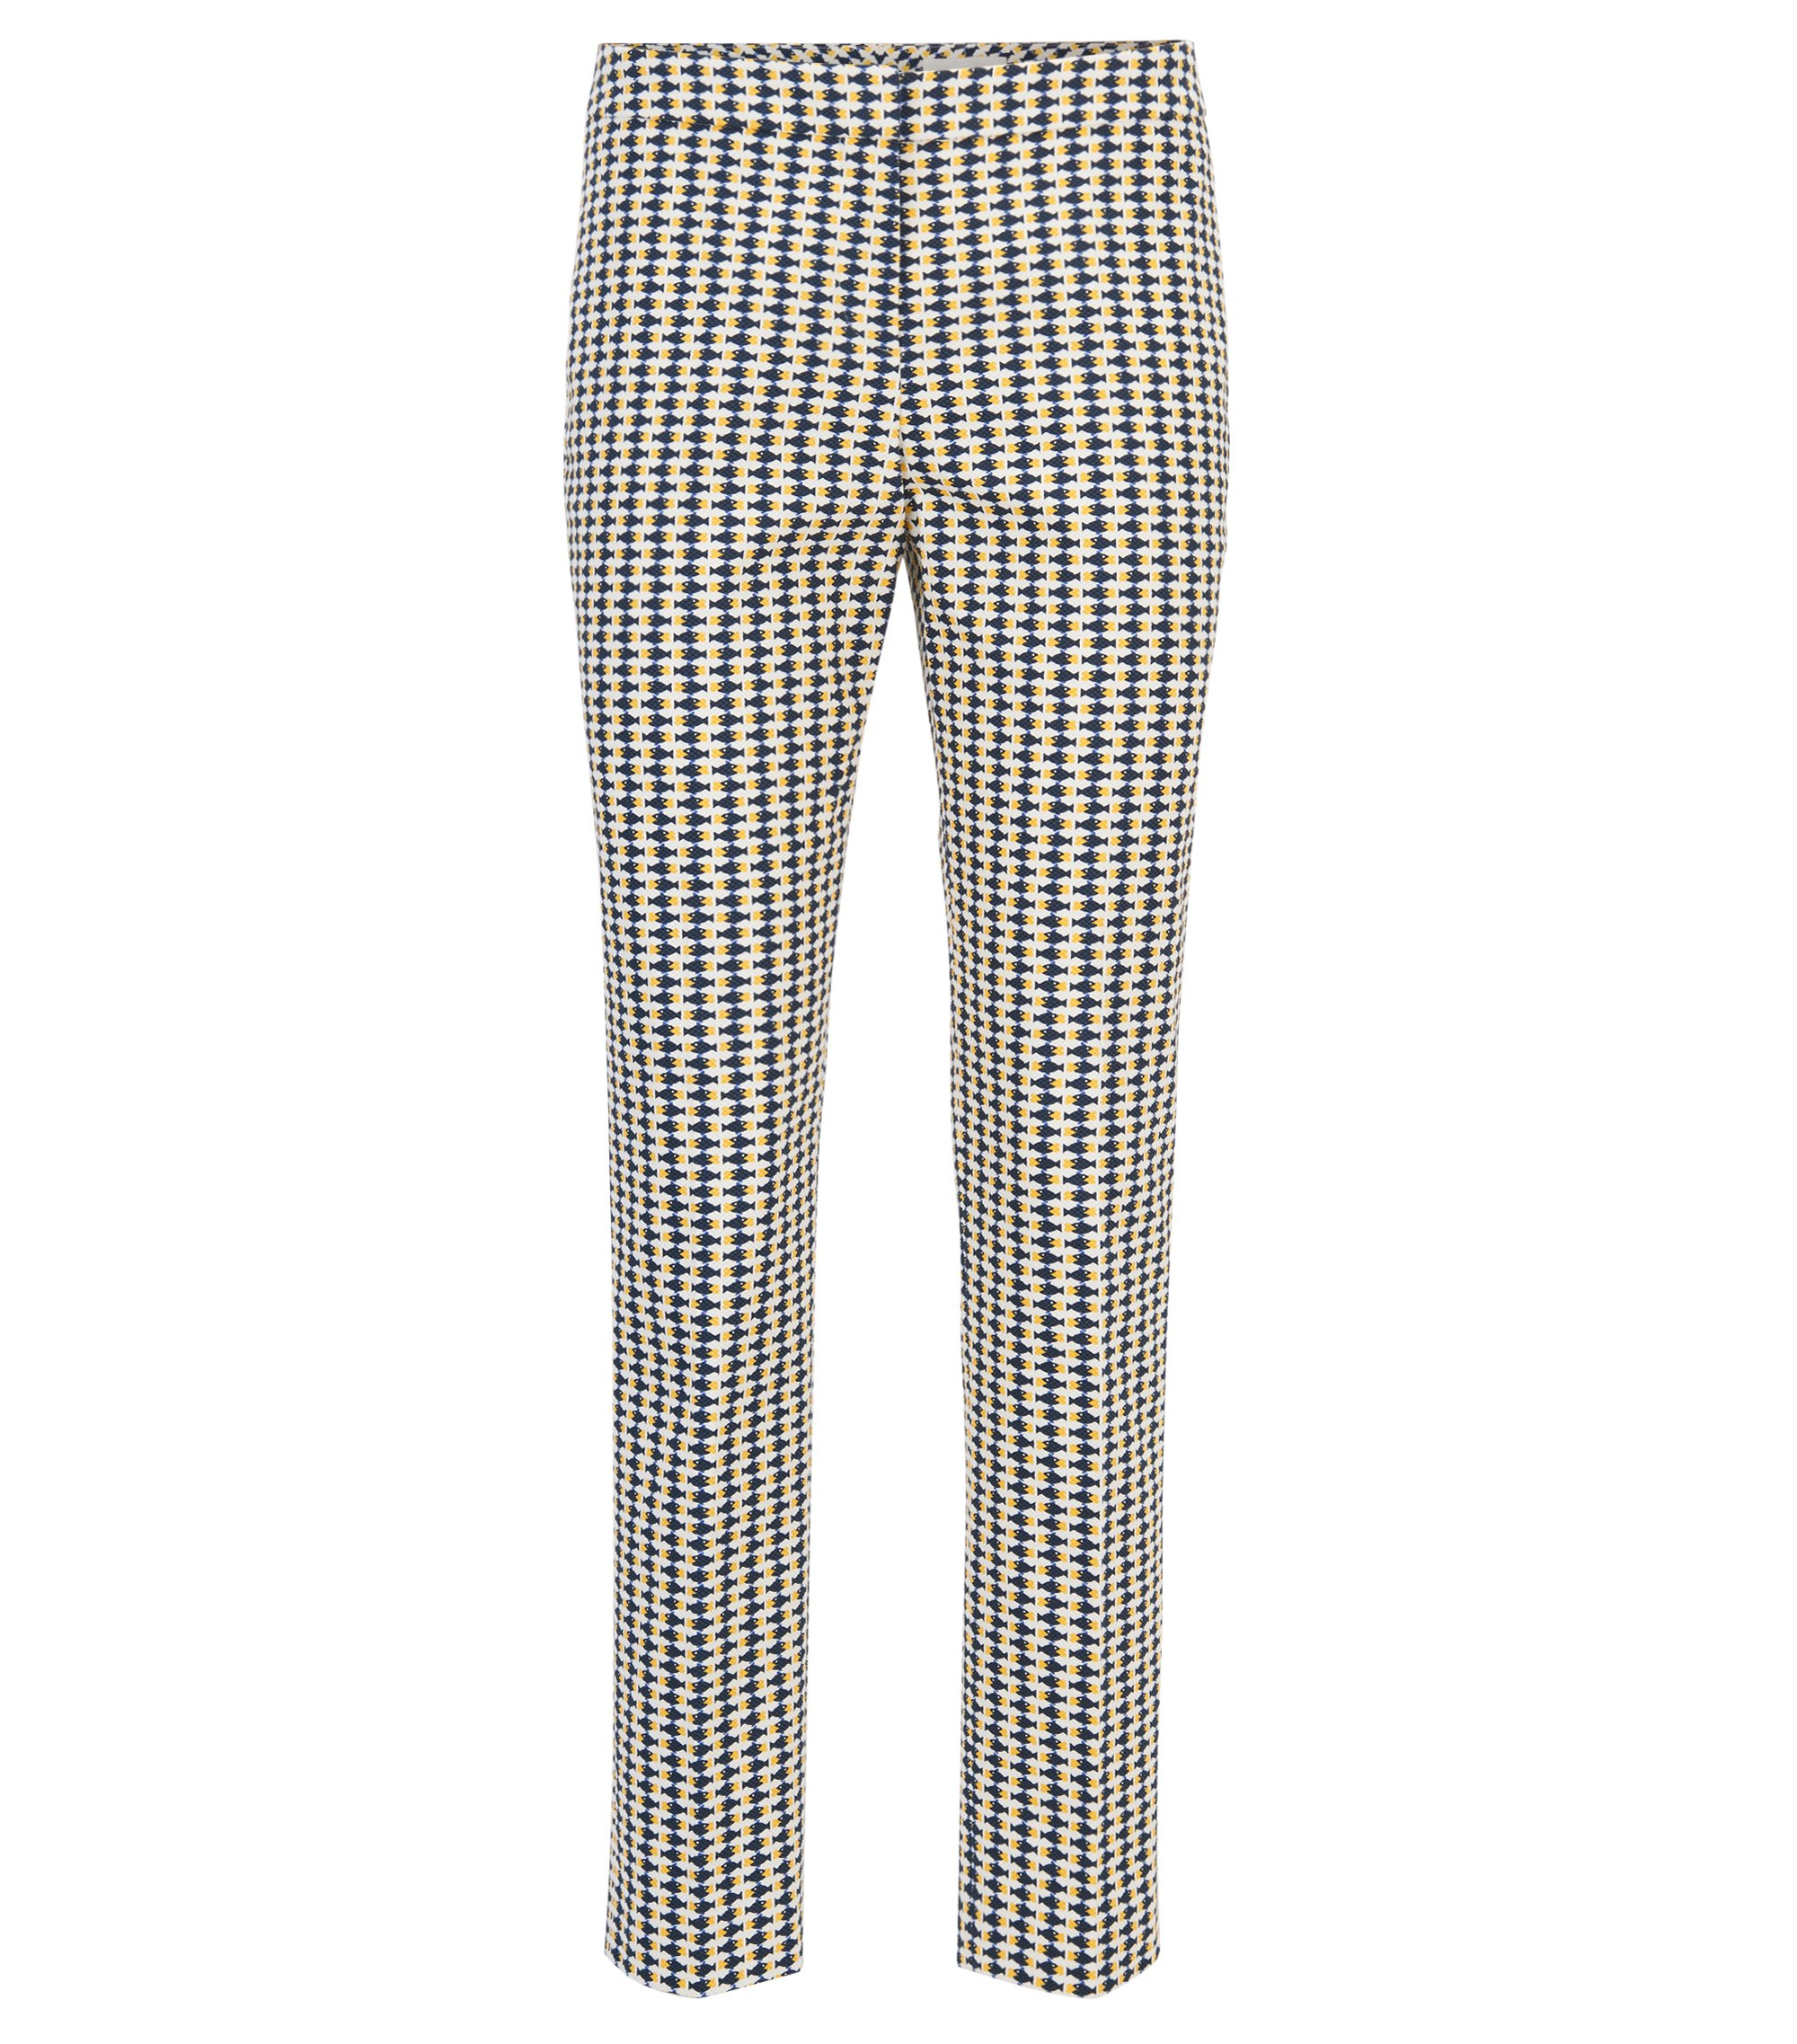 Cropped trousers in fish-print stretch cotton piqué, Patterned